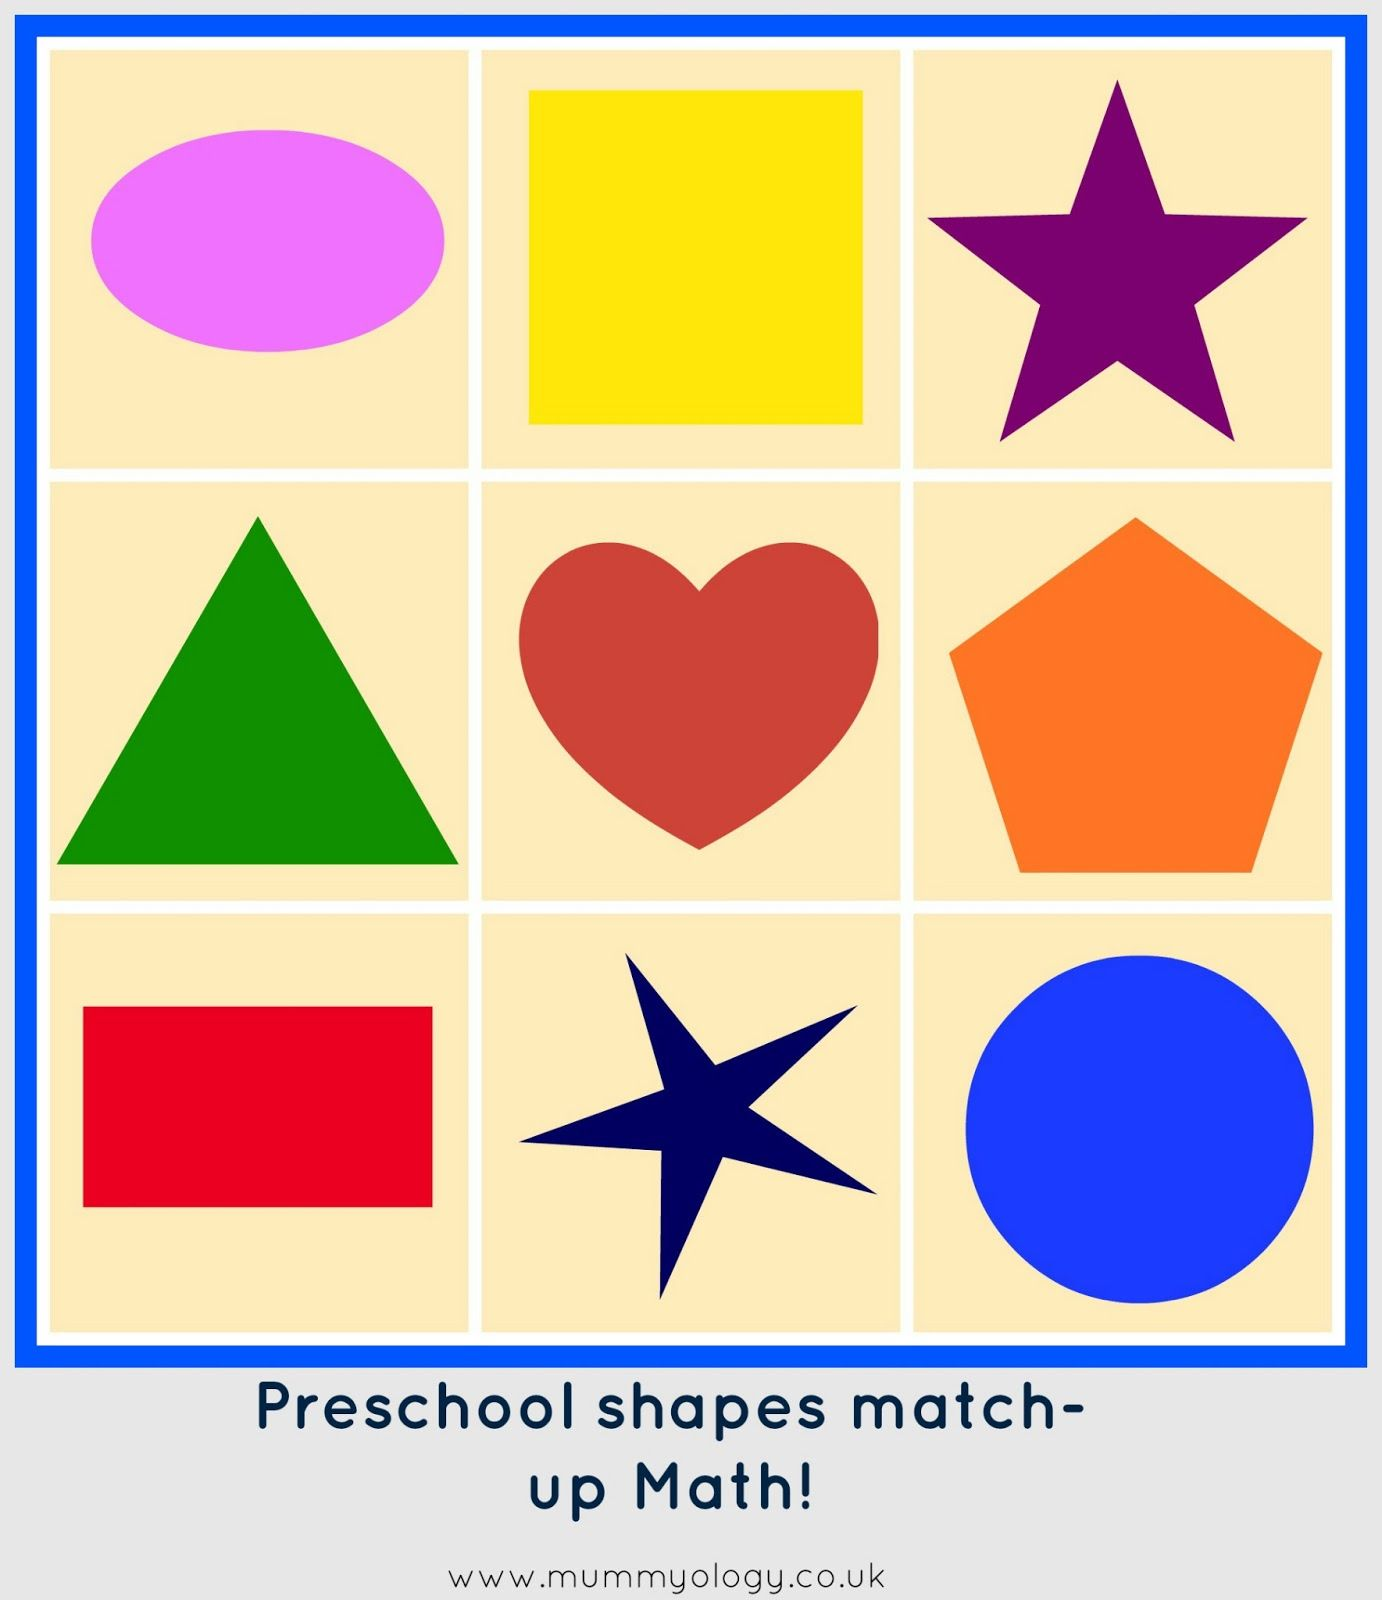 preschool shapes math shapes colors pinterest math shapes and free printable. Black Bedroom Furniture Sets. Home Design Ideas